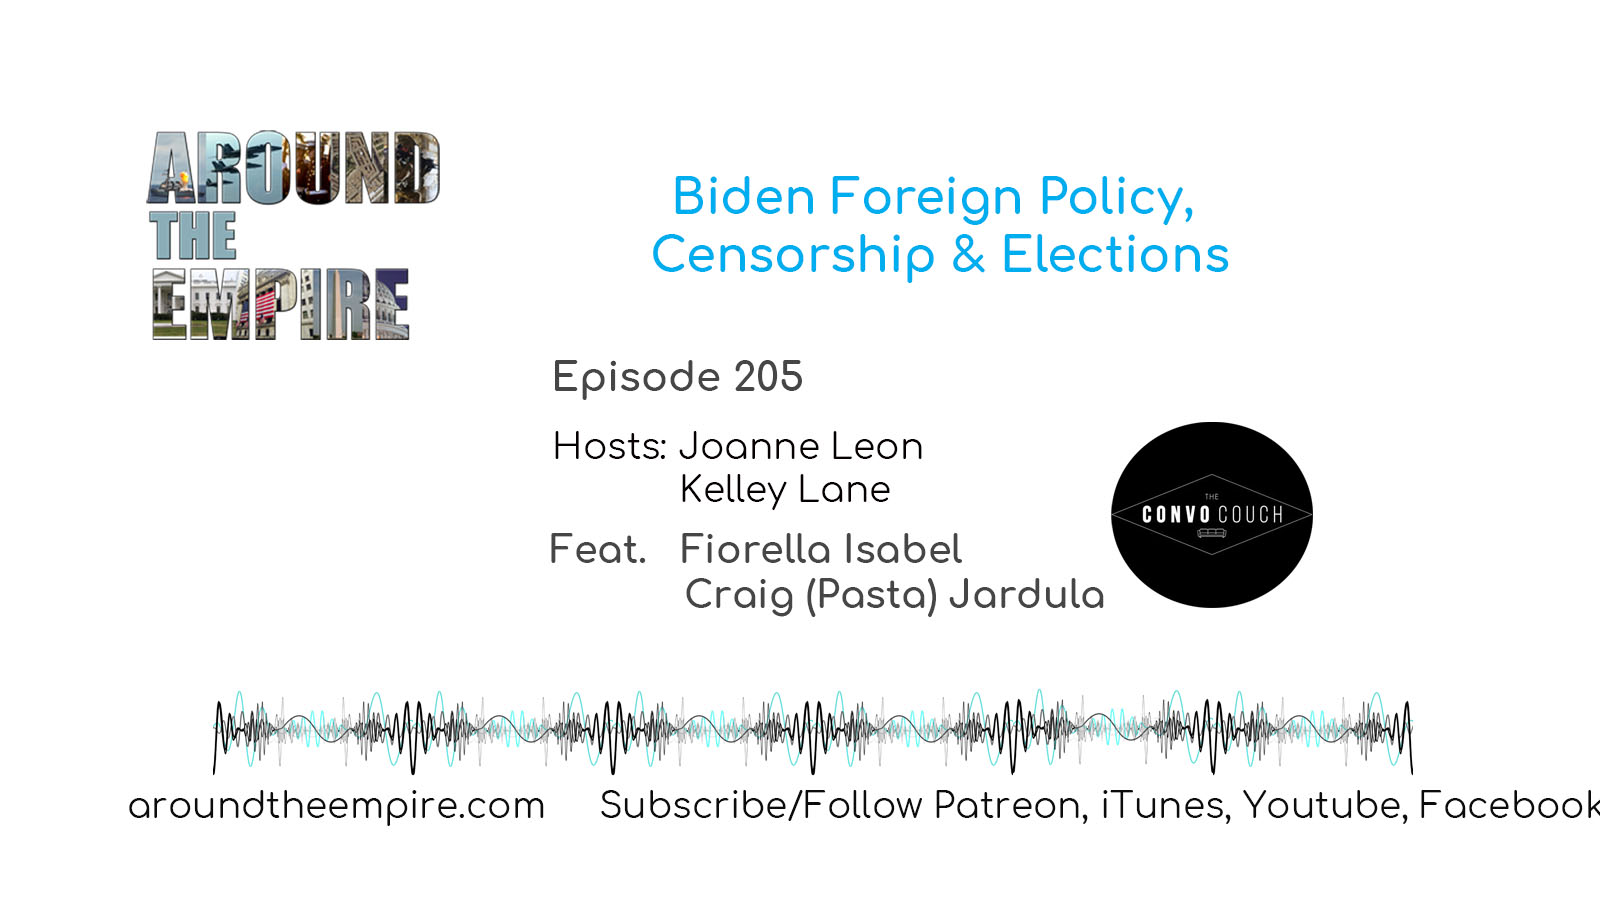 Ep 205 Biden Foreign Policy, Censorship & Elections feat Convo